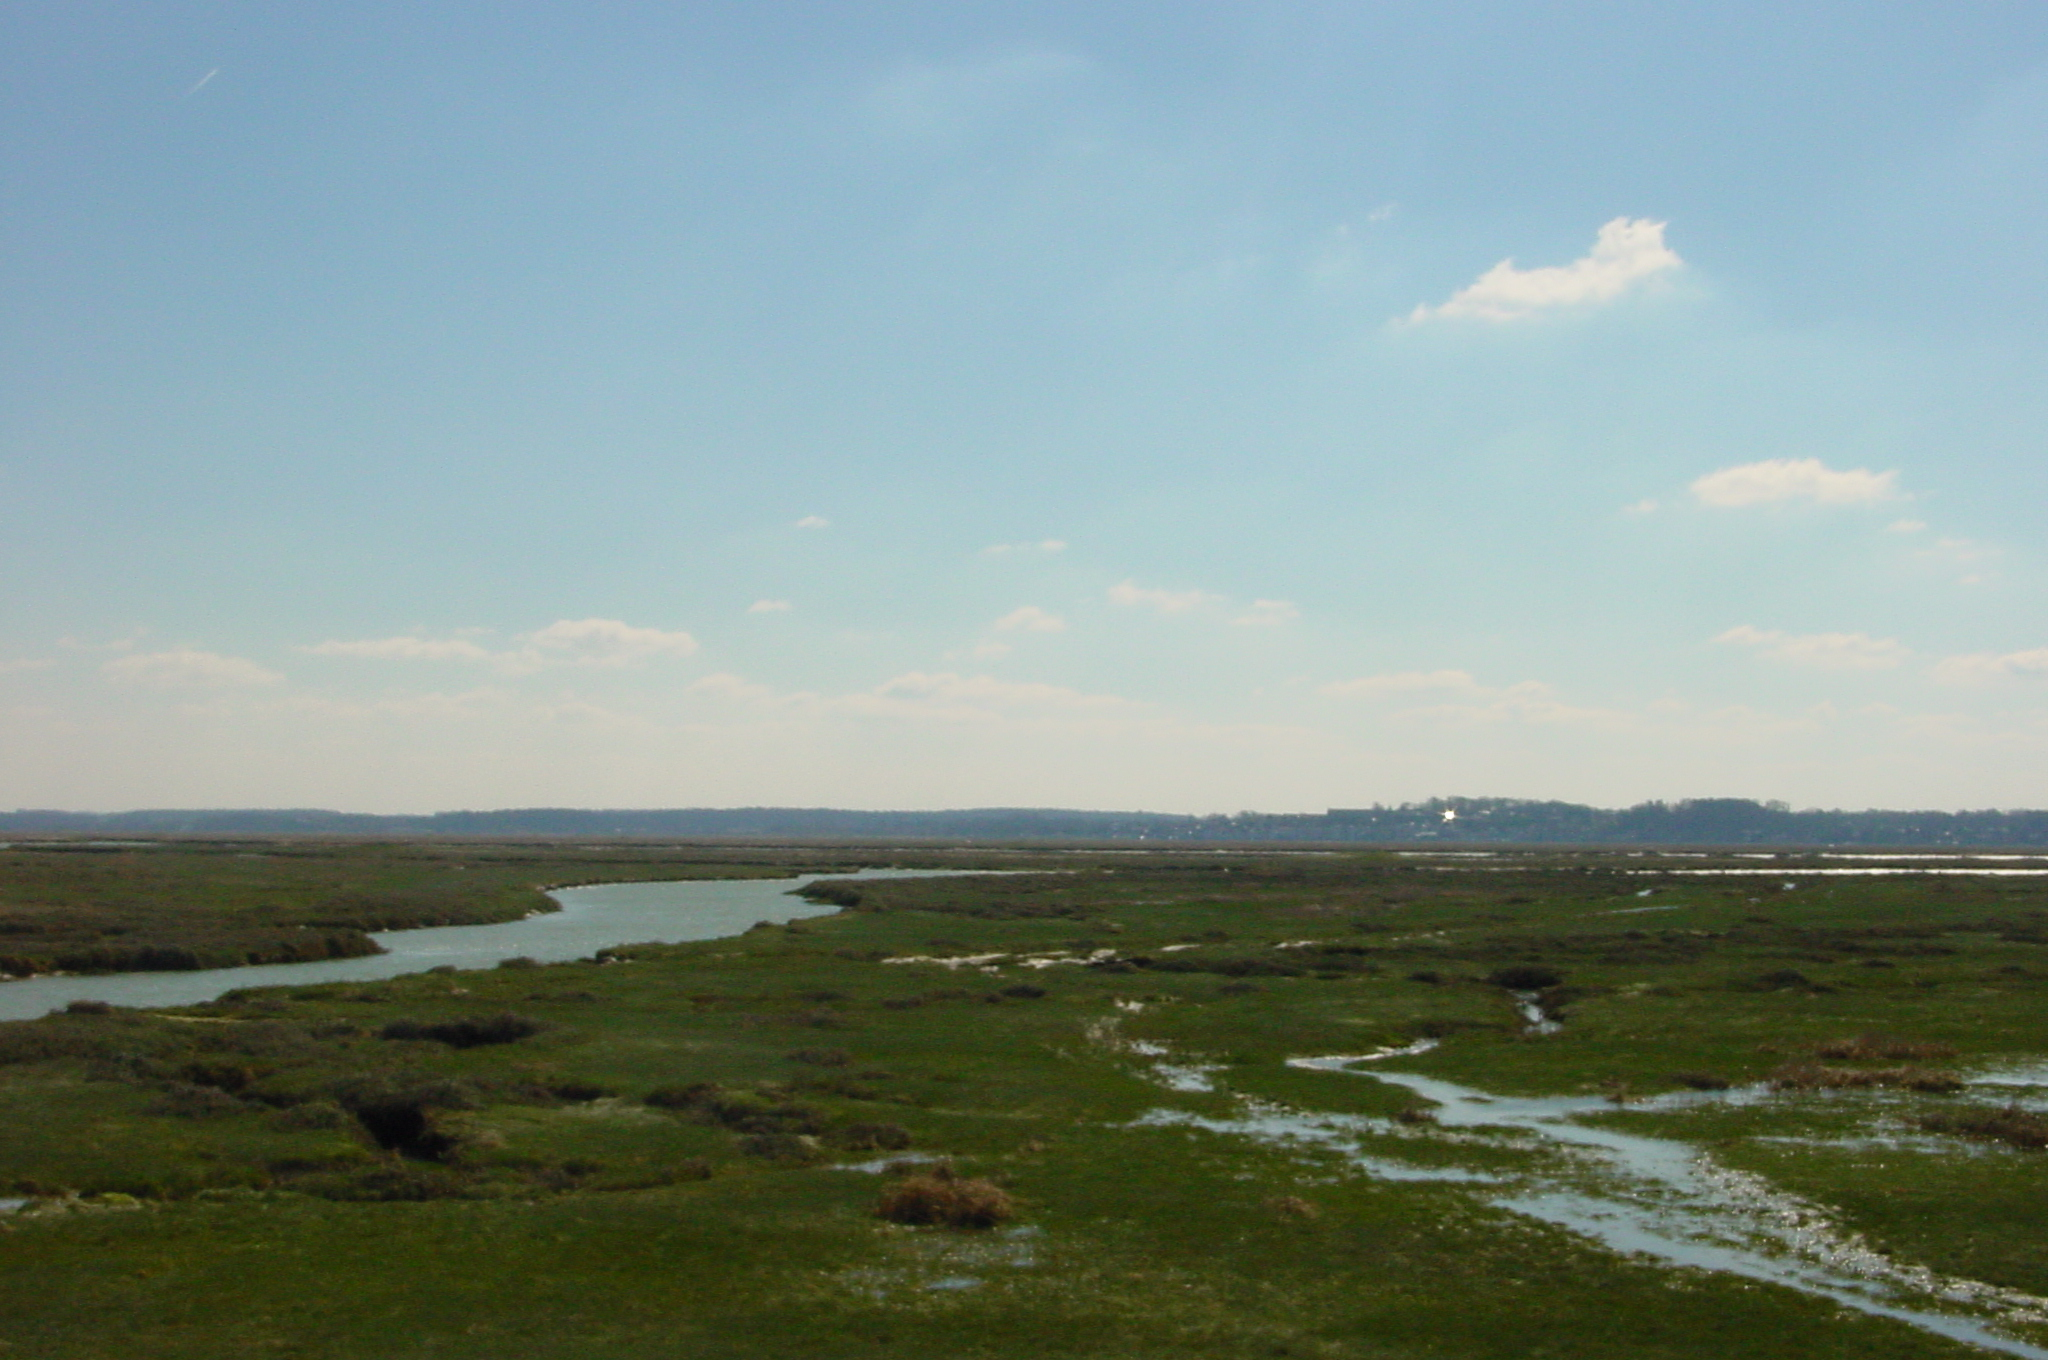 Baie de somme wikiwand - Baie de somme chambre d hote ...